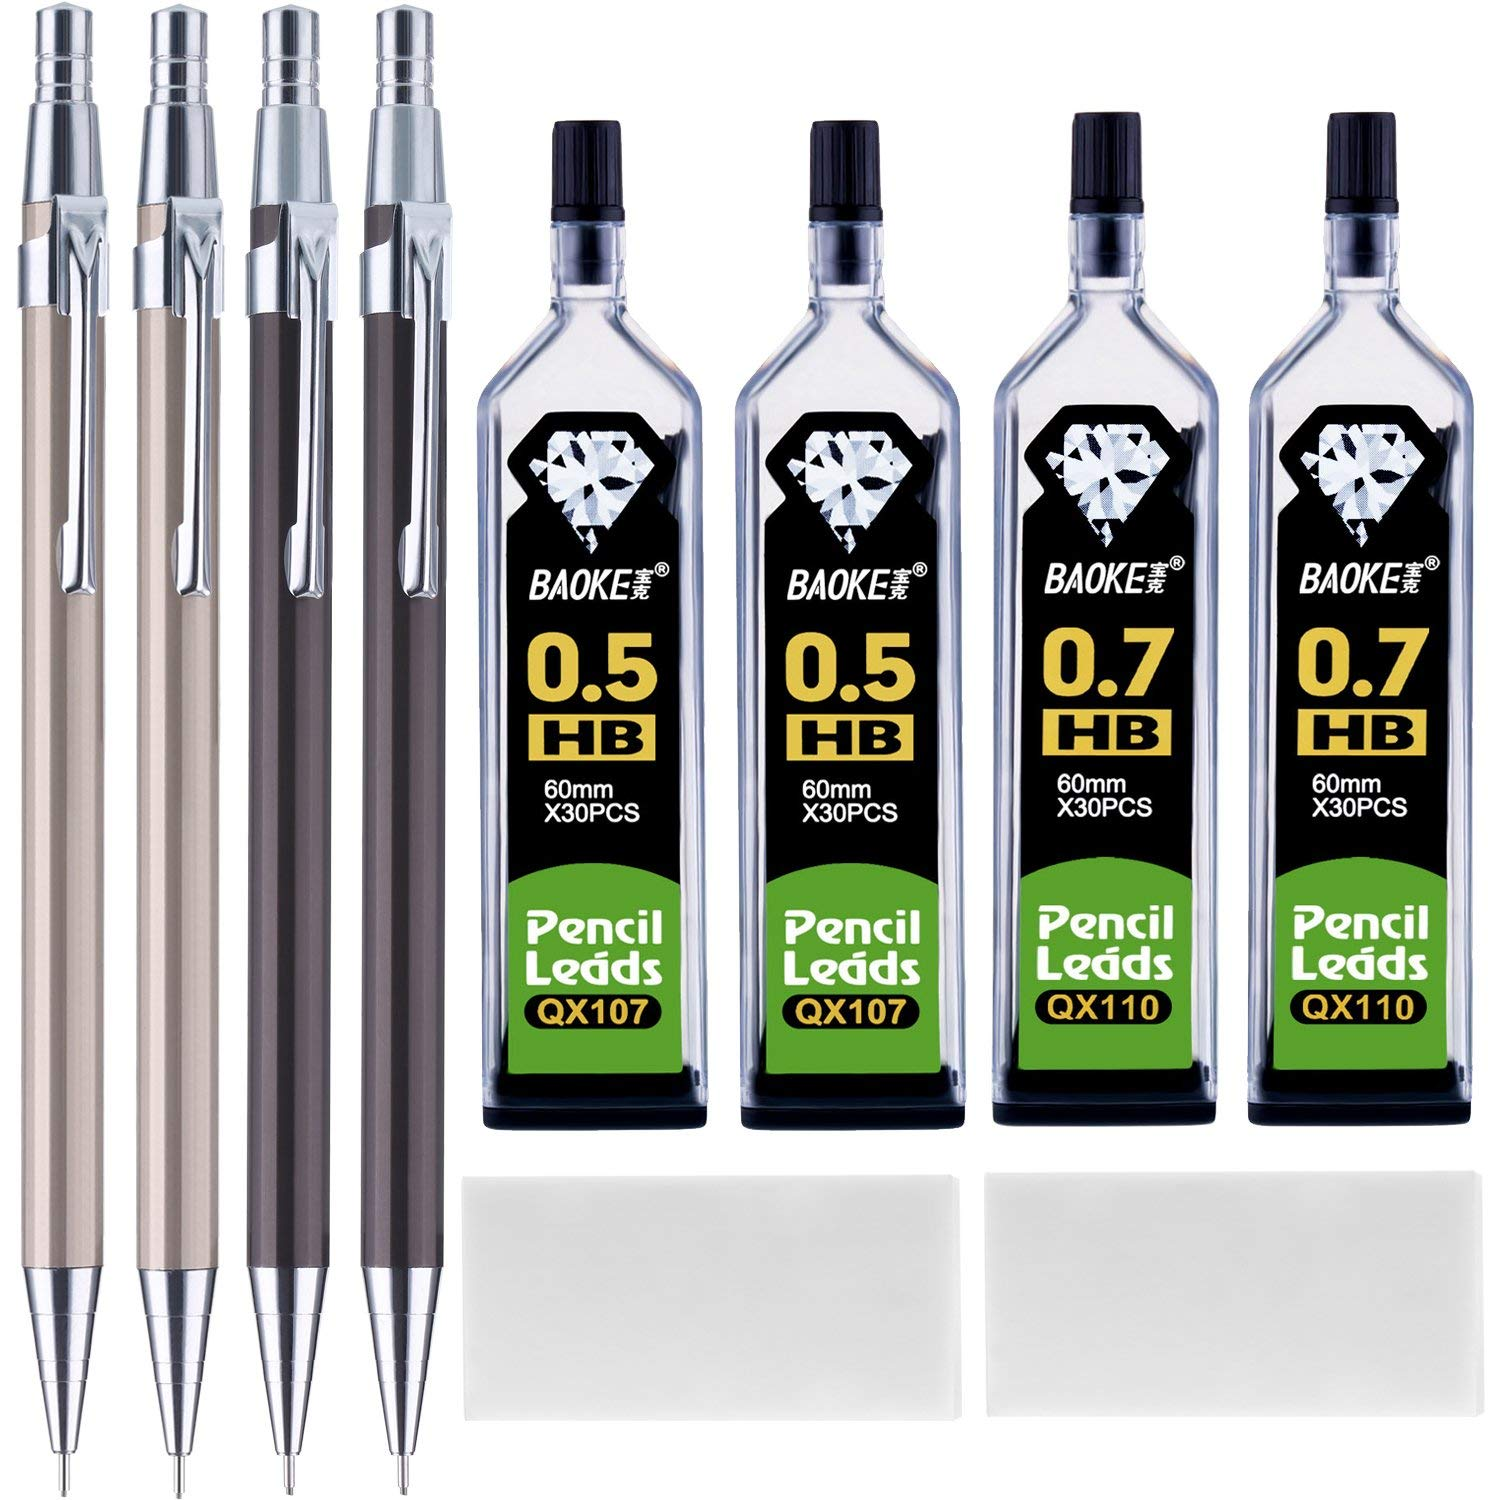 Bememo 10 Pieces Mechanical Pencil Set 0.5 mm 0.7 mm Mechanical Pencils with HB Lead Refills and Erasers for Drafting, Art Projects and General Writing